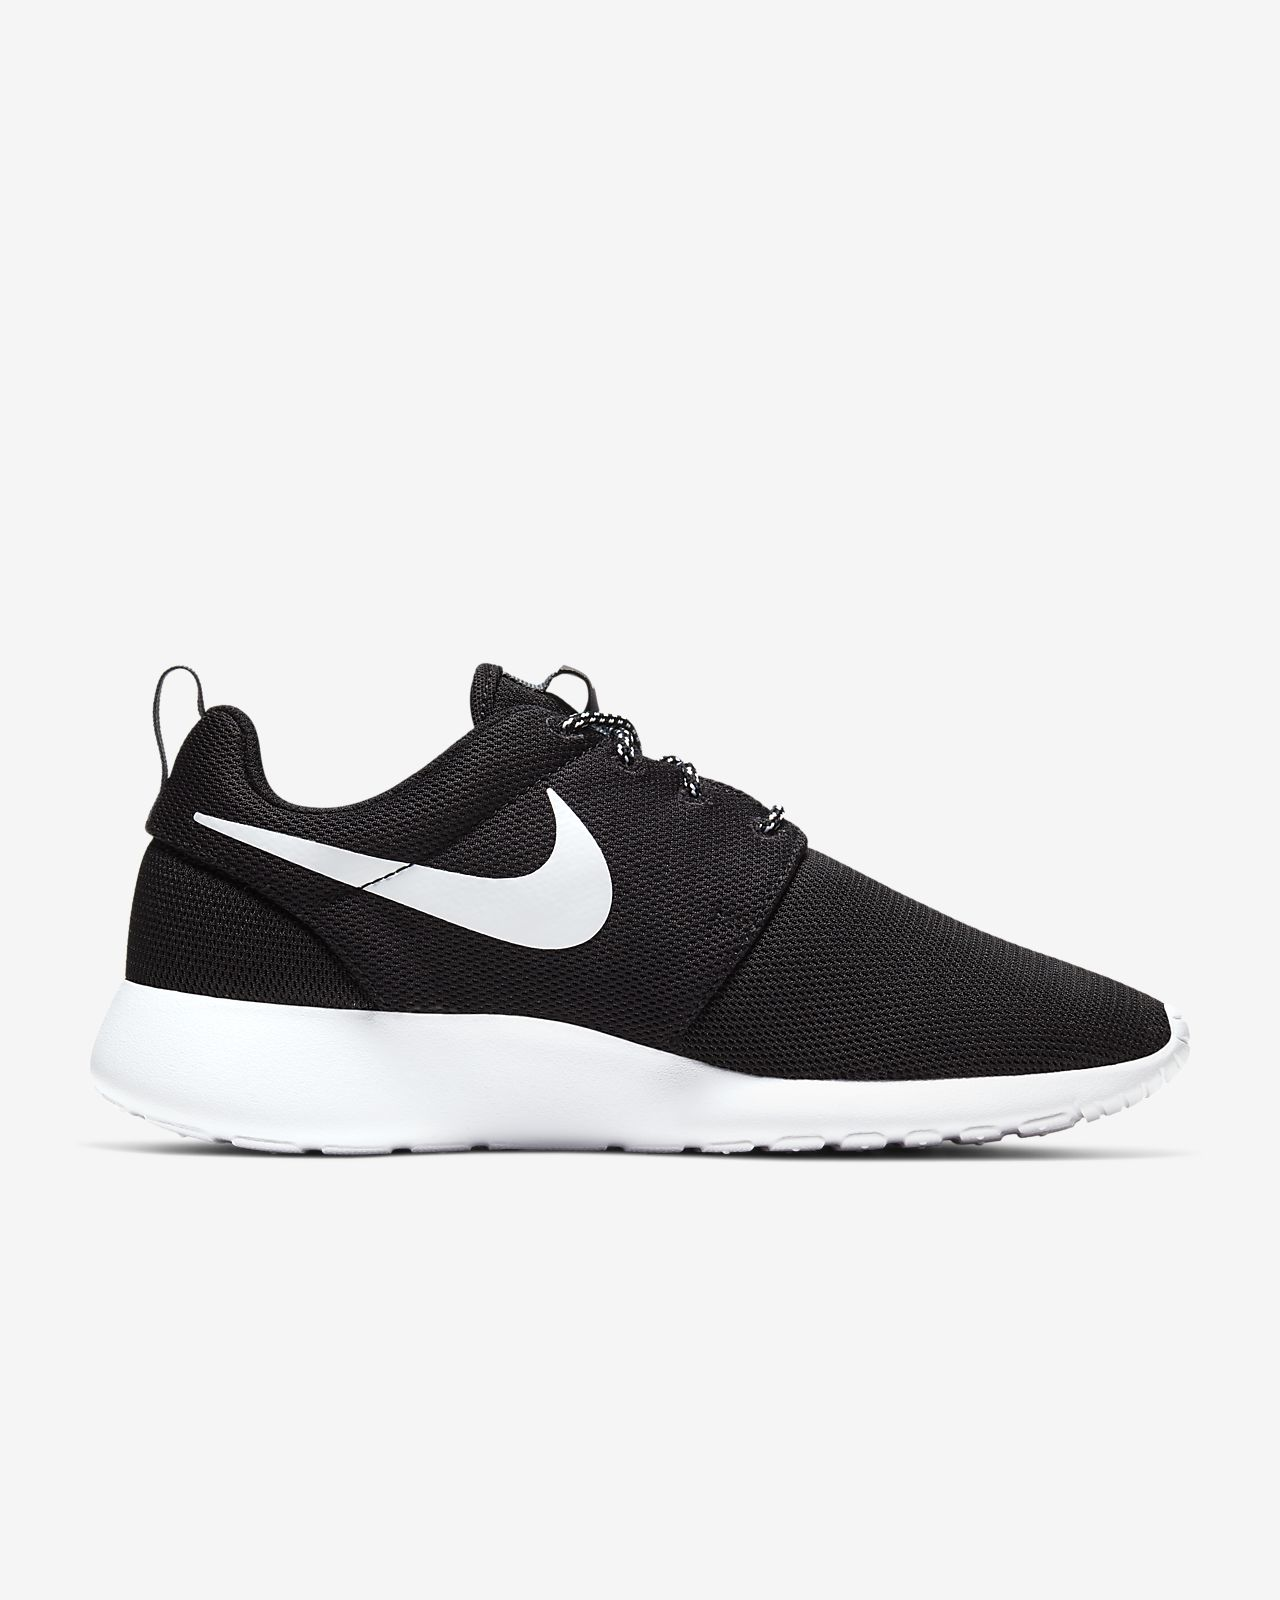 buy online 4b5e1 26ea1 ... Nike Roshe One Womens Shoe